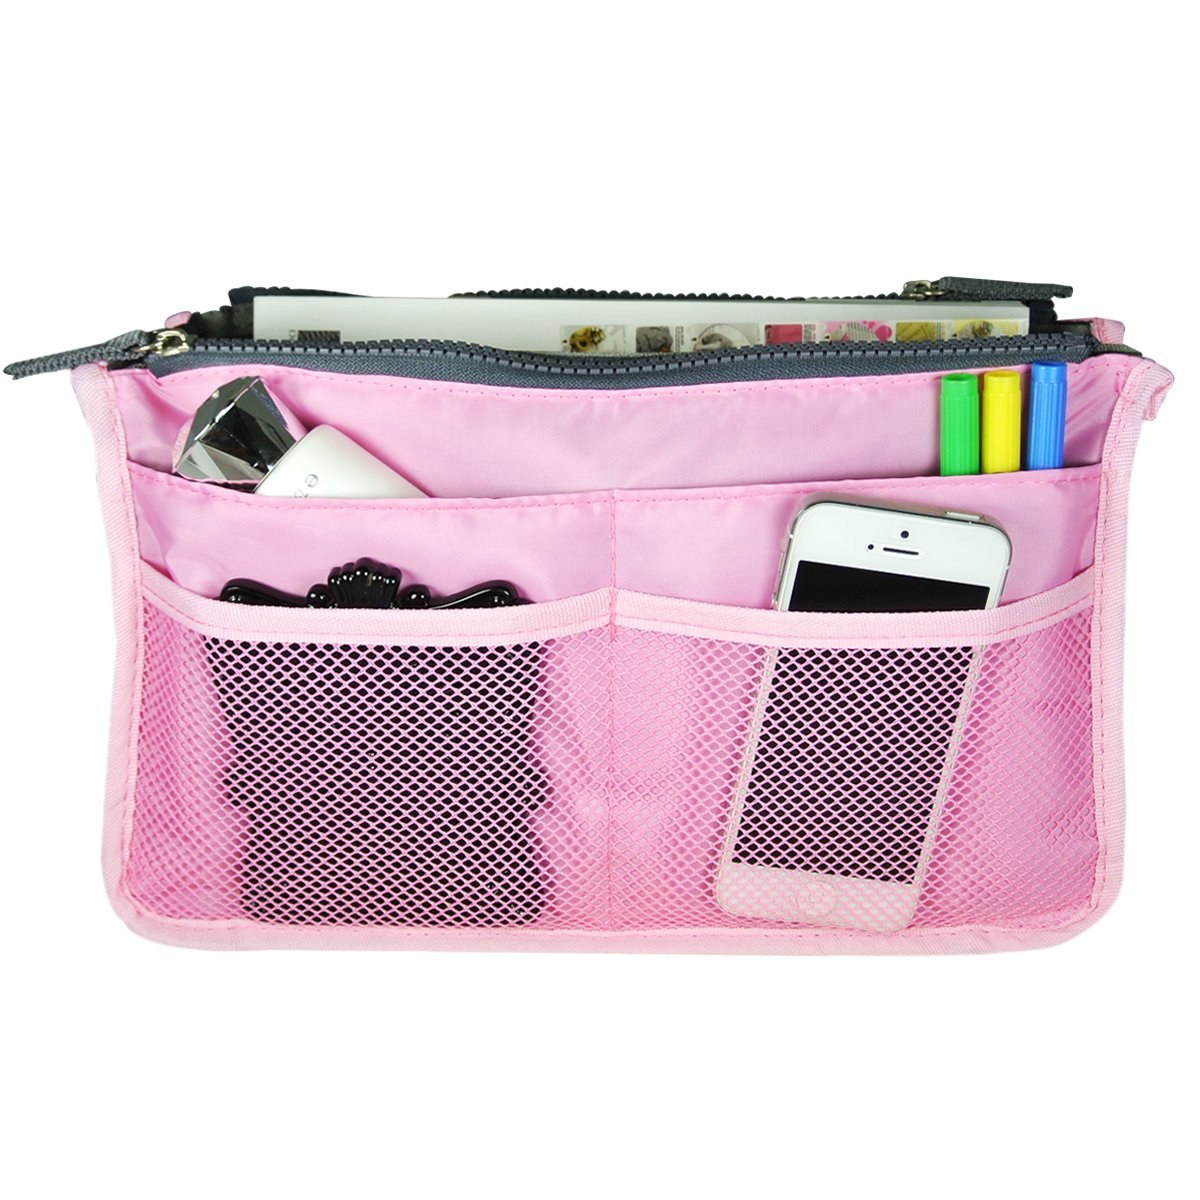 Bag Organizer Purse Insert Handbag Organizer Travel Bag, Pink